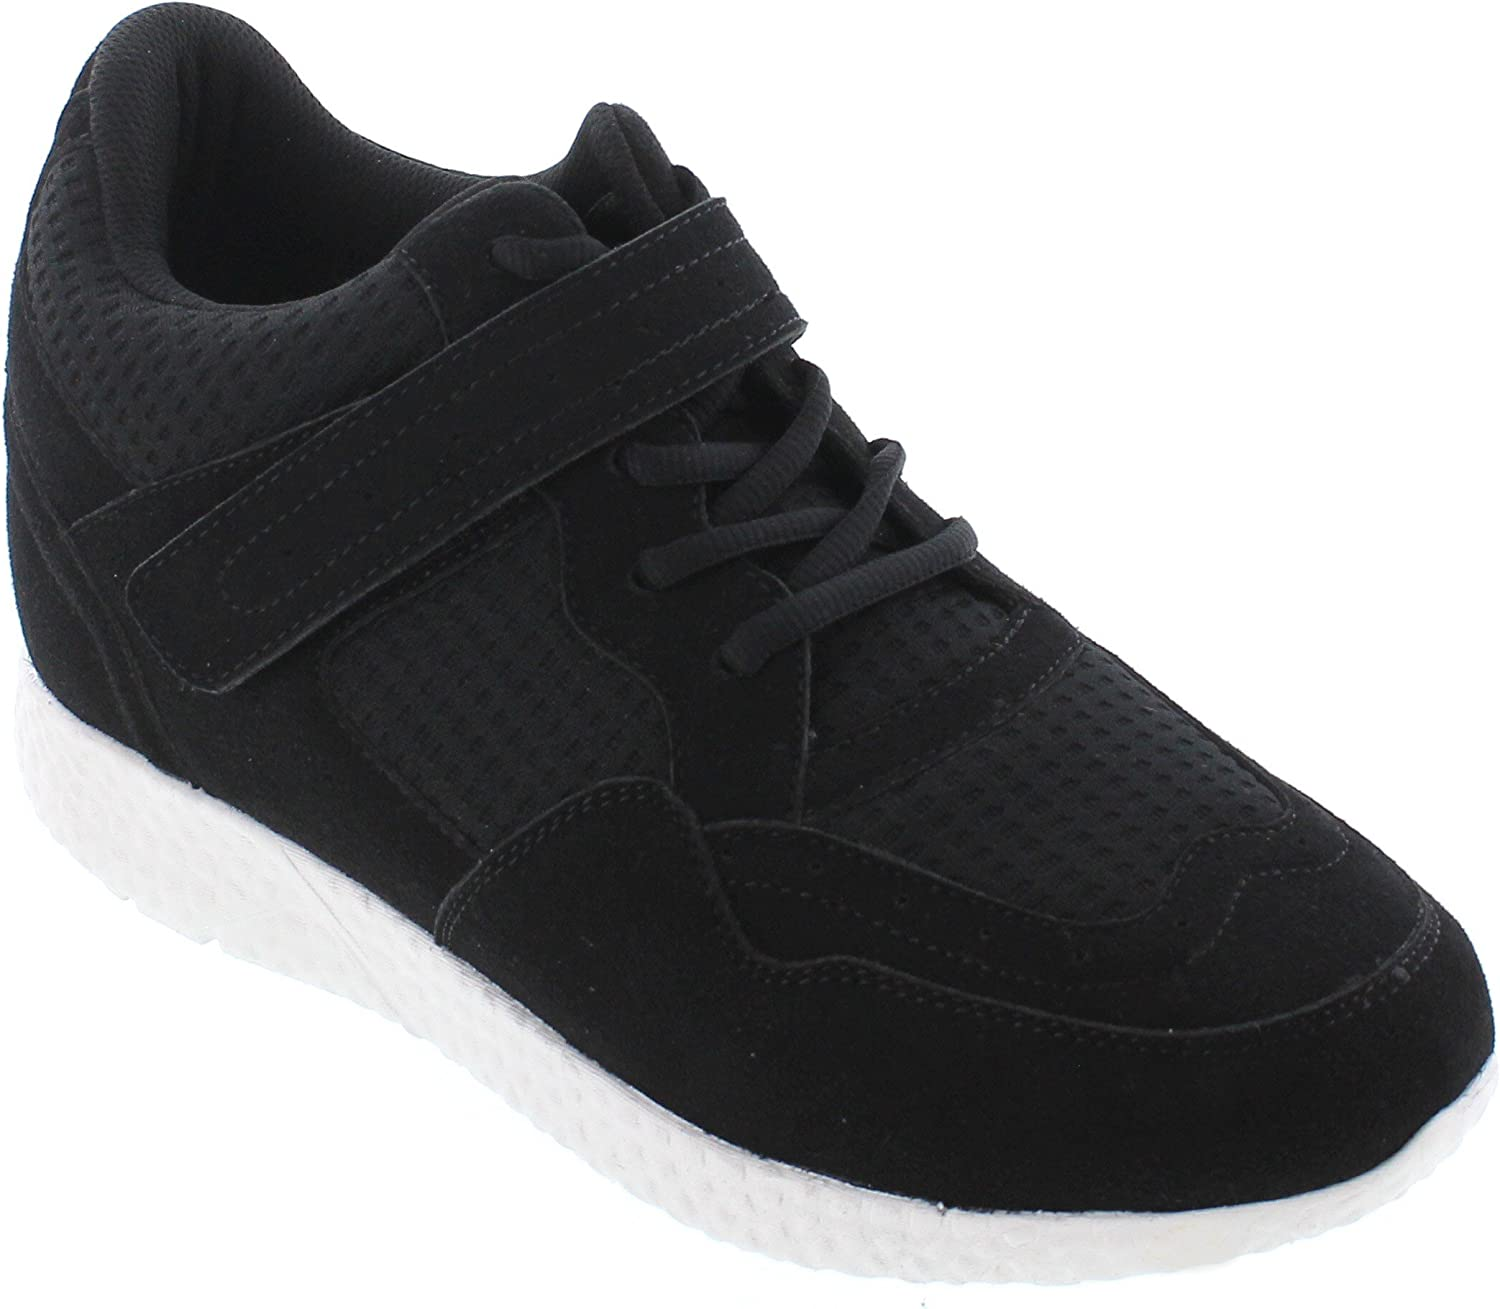 CALTO Men's Cheap SALE Start Invisible Height Increasing Elevator N - Shoes Sale SALE% OFF Black